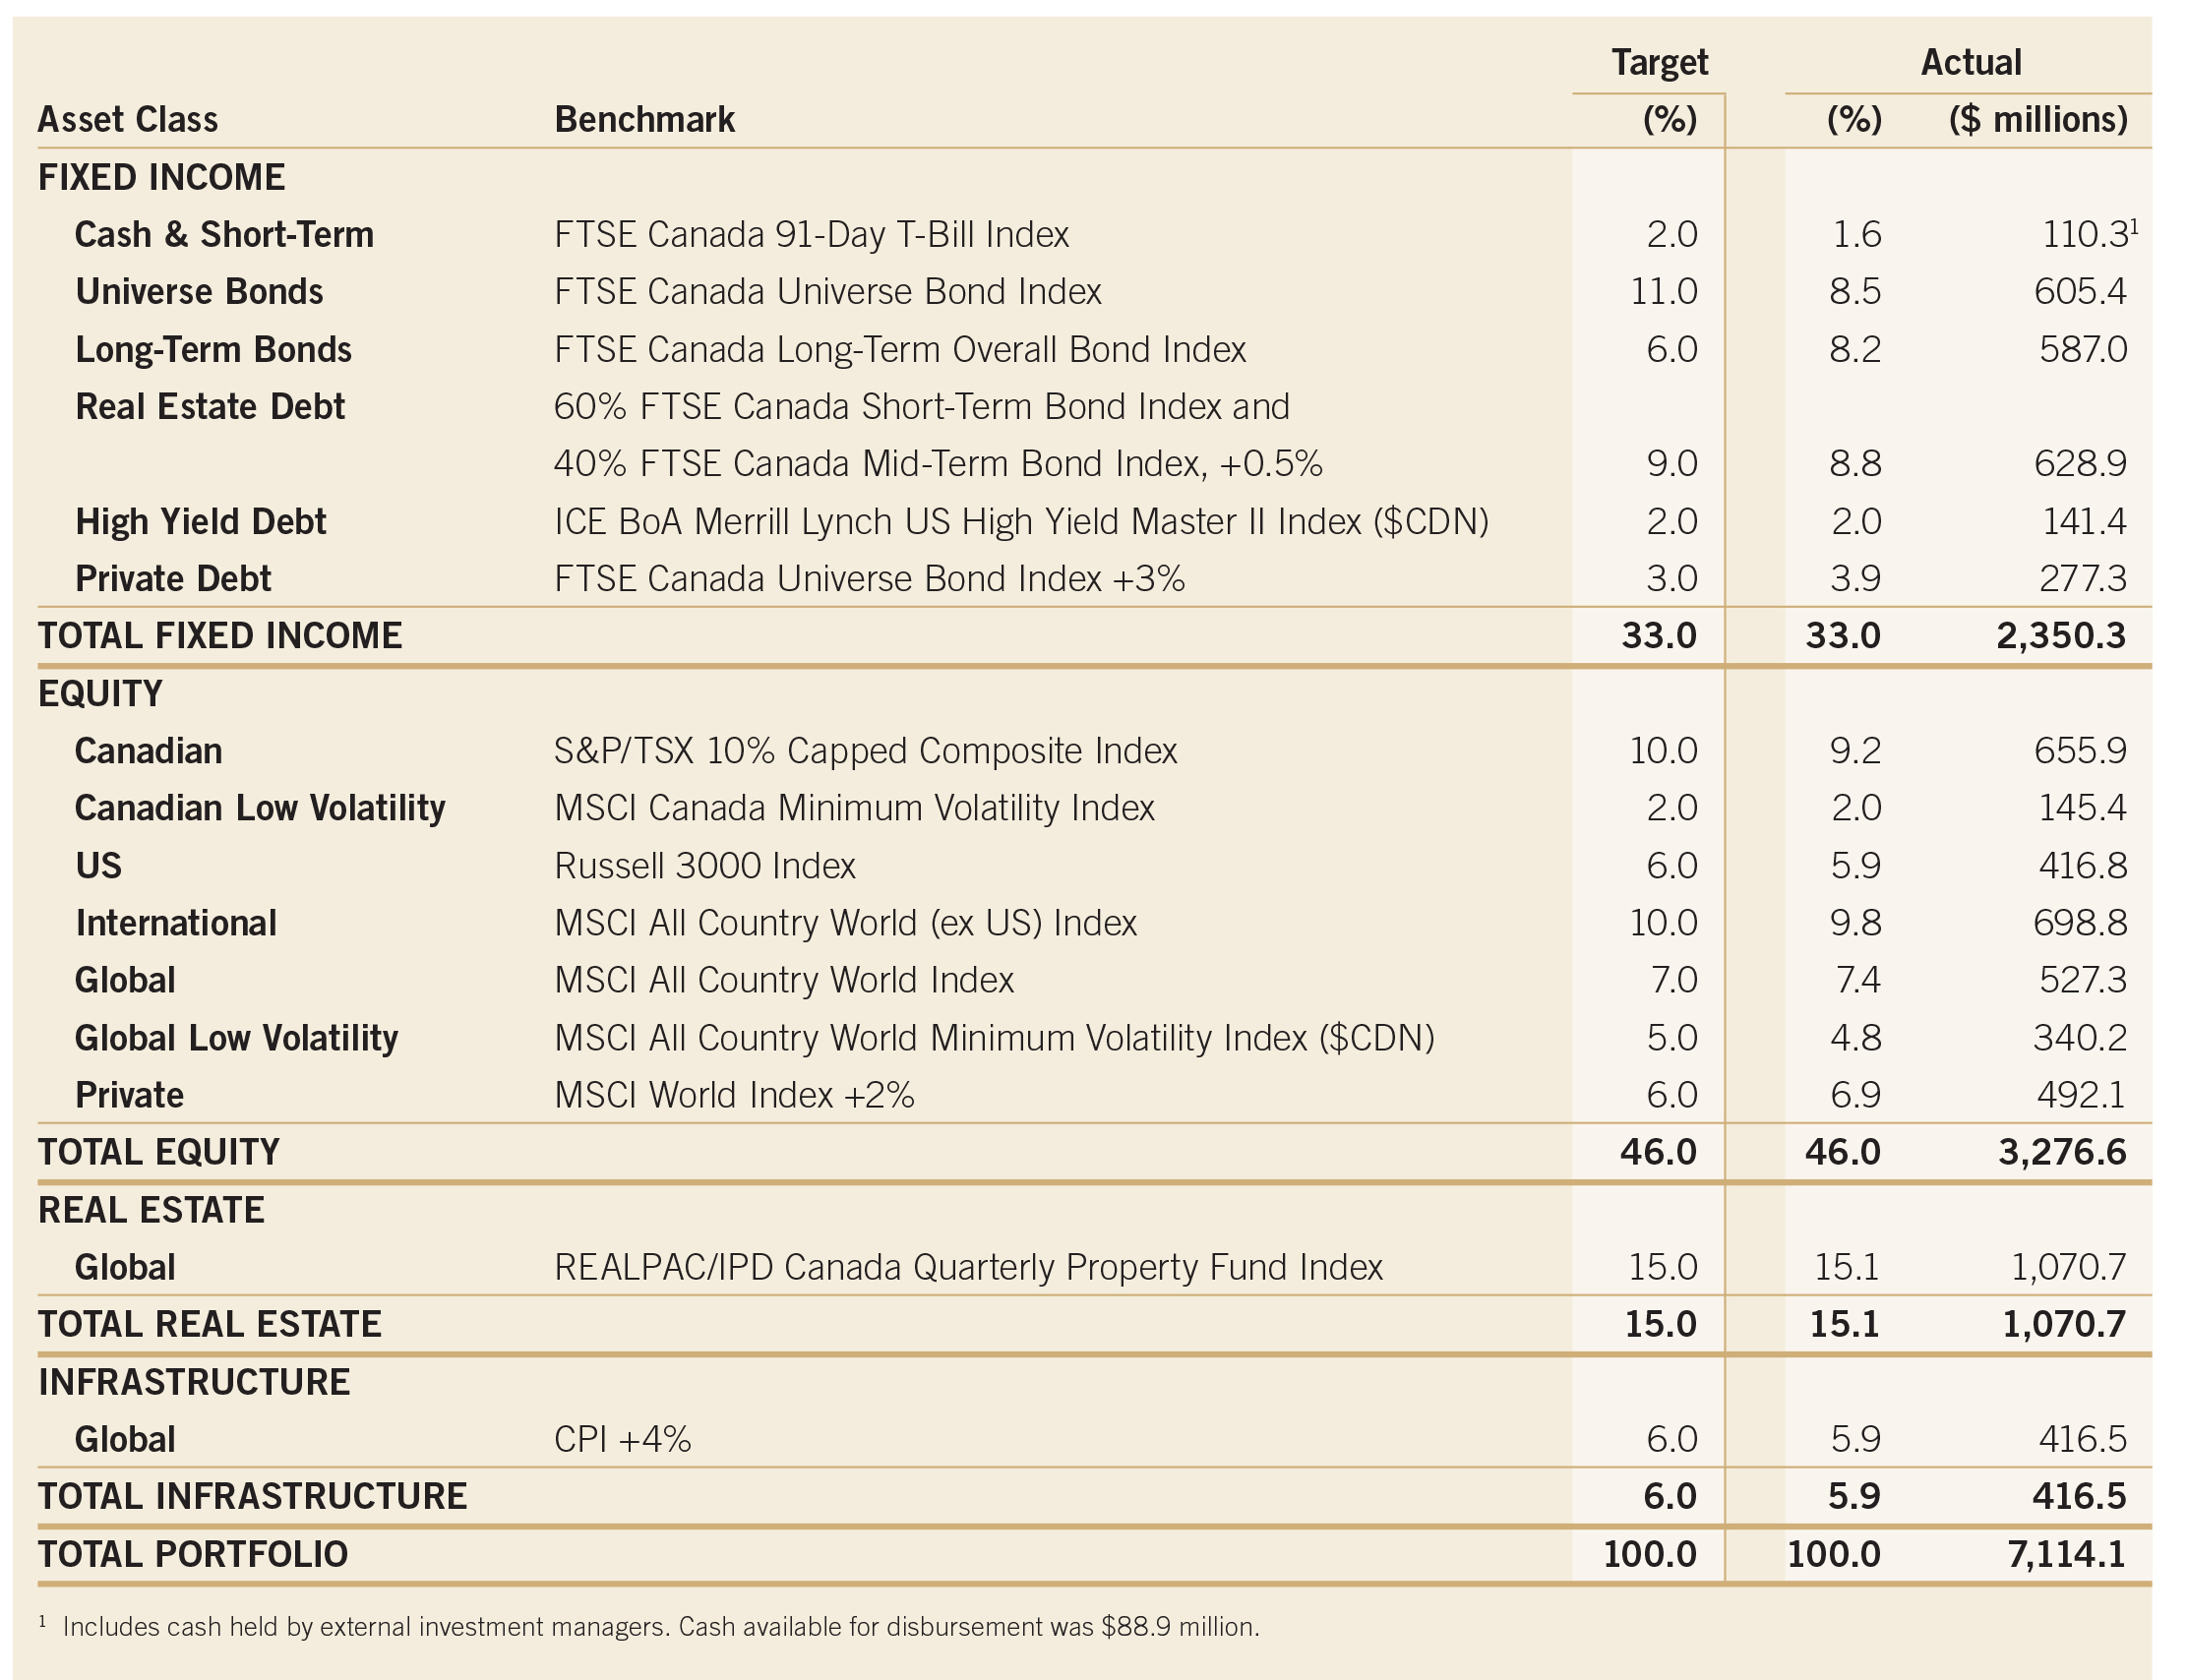 pg 42 Asset Allocation and Benchmarks